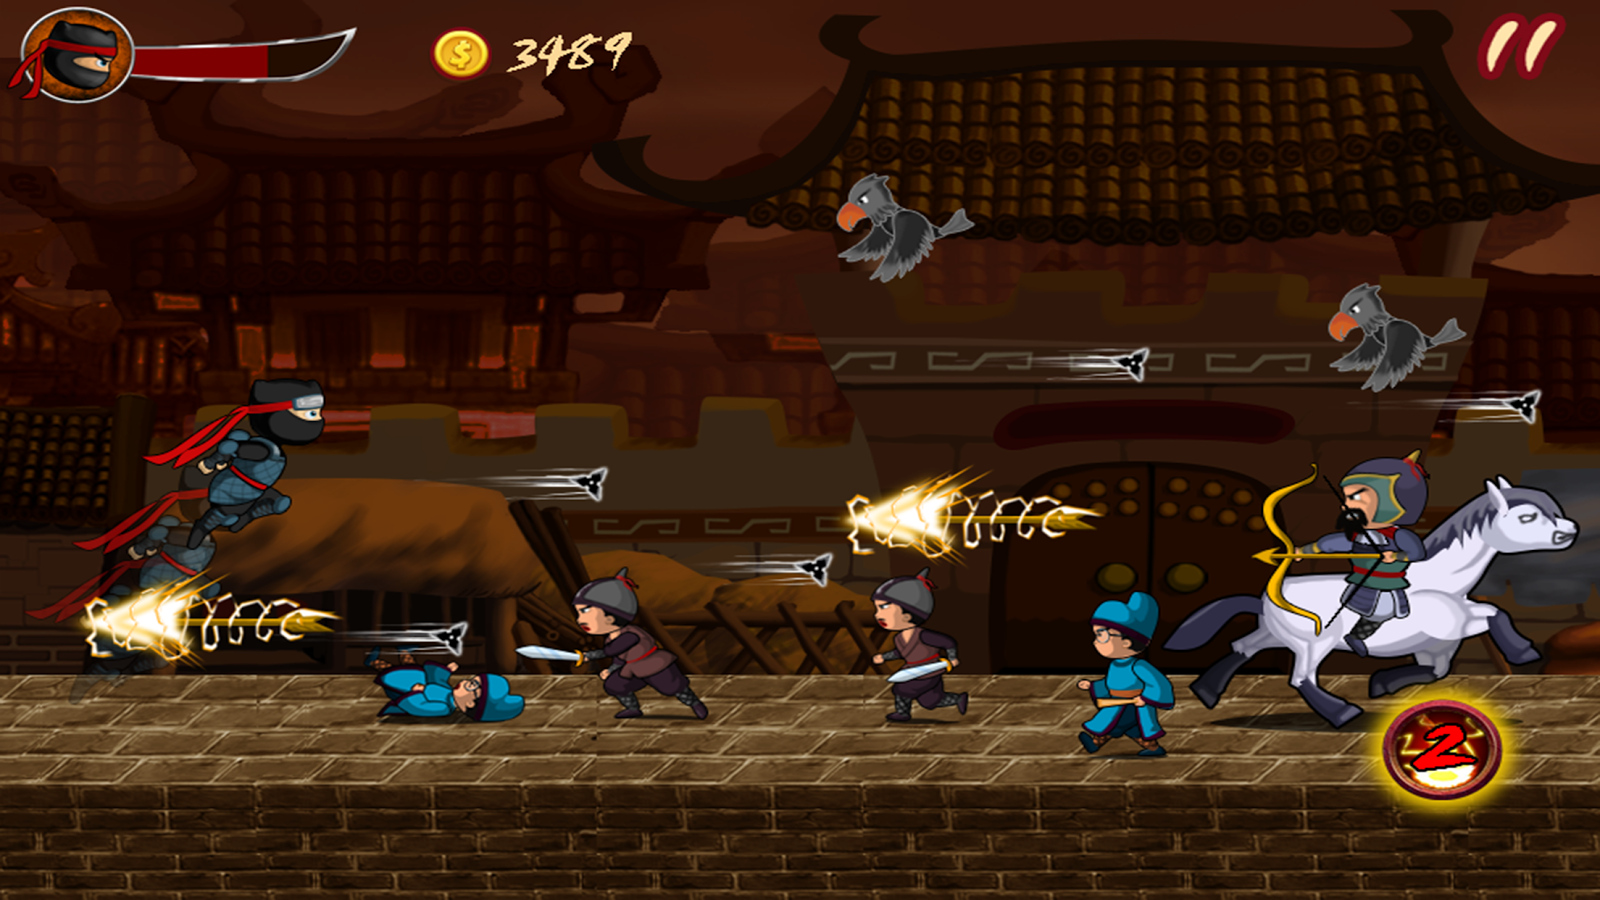 Ninja Hero The Super Battle Apl Android Di Google Play